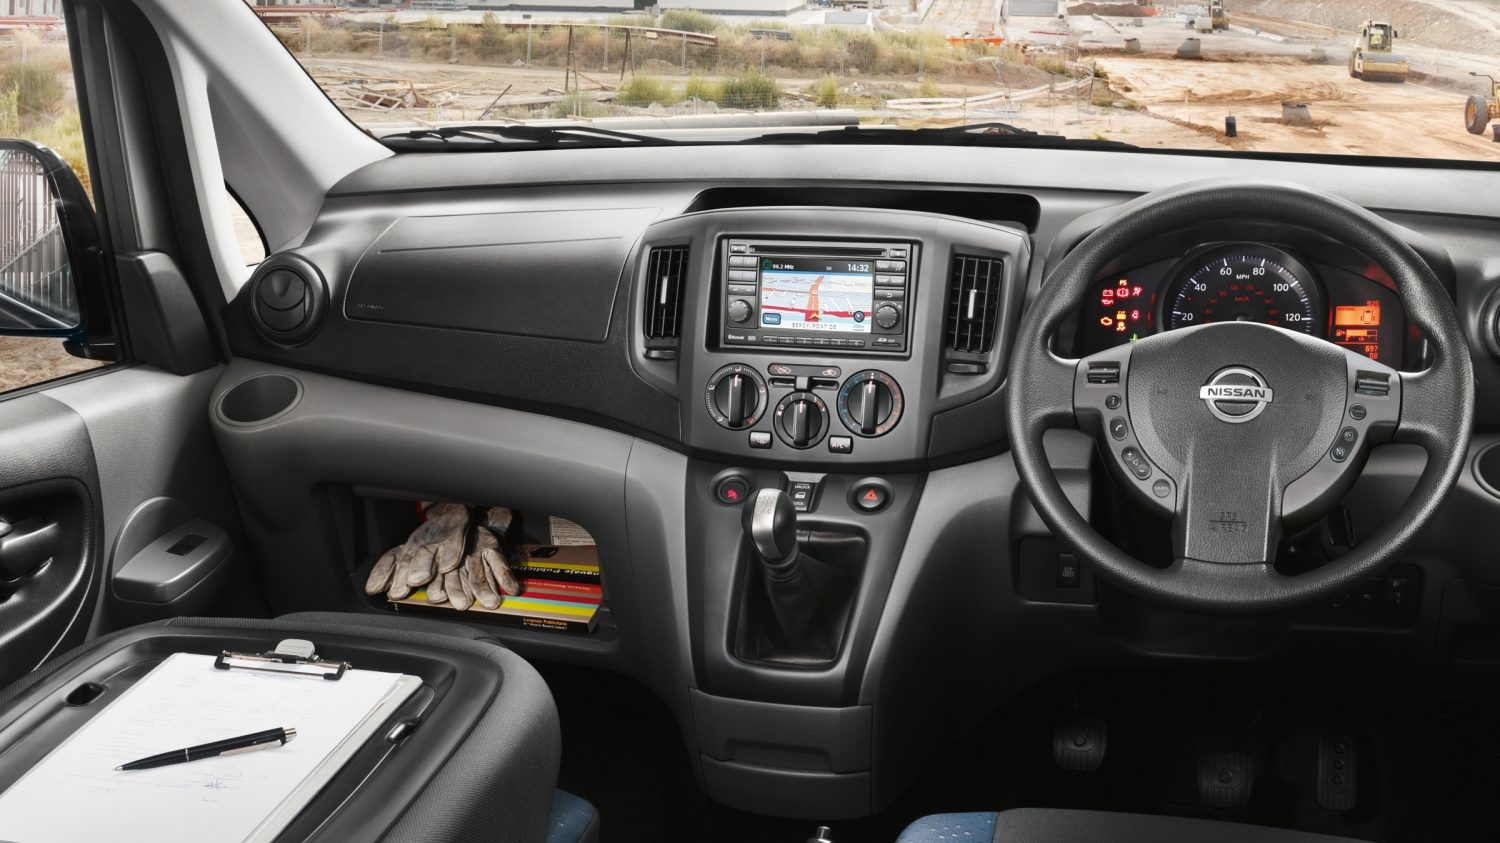 Van | Nissan NV200 | Commercial vehicle interior